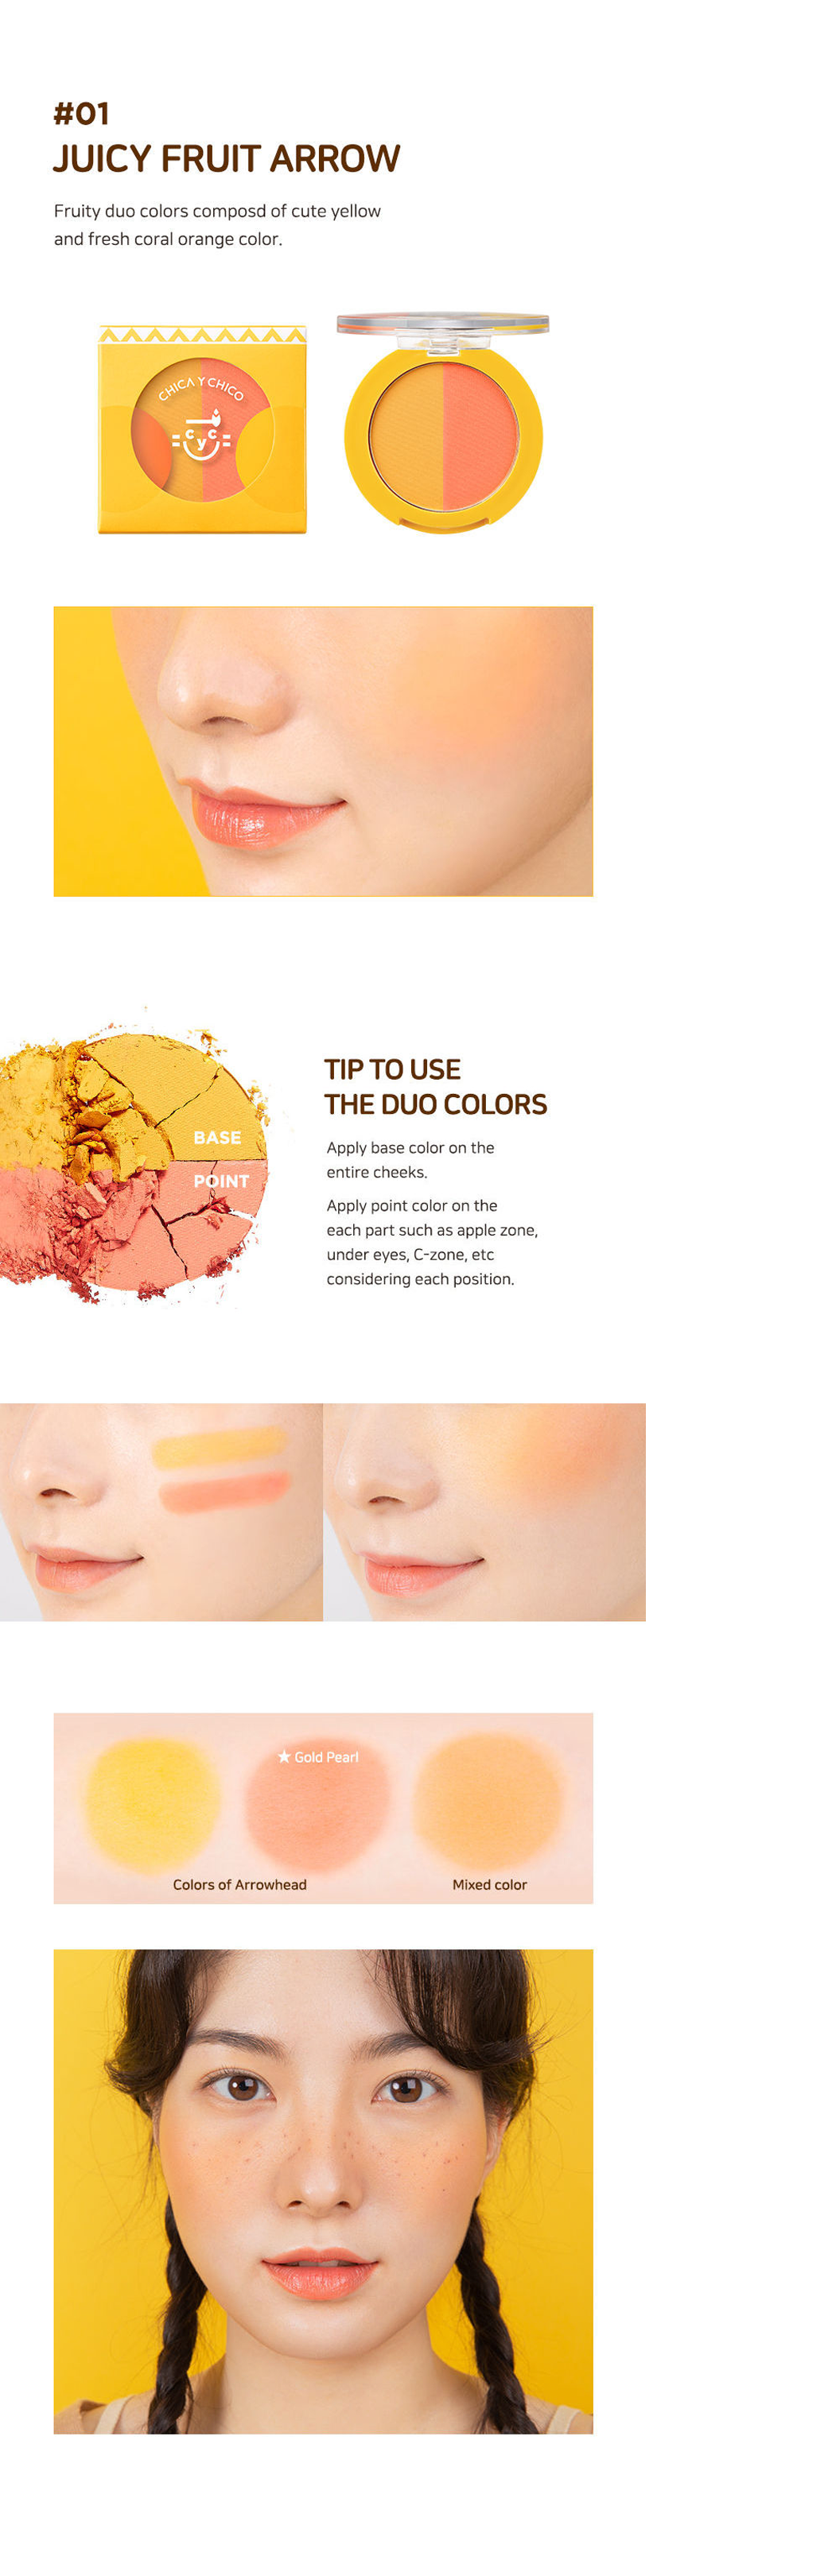 One Touch Duo Blusher #01 Juicy Fruit Arrow